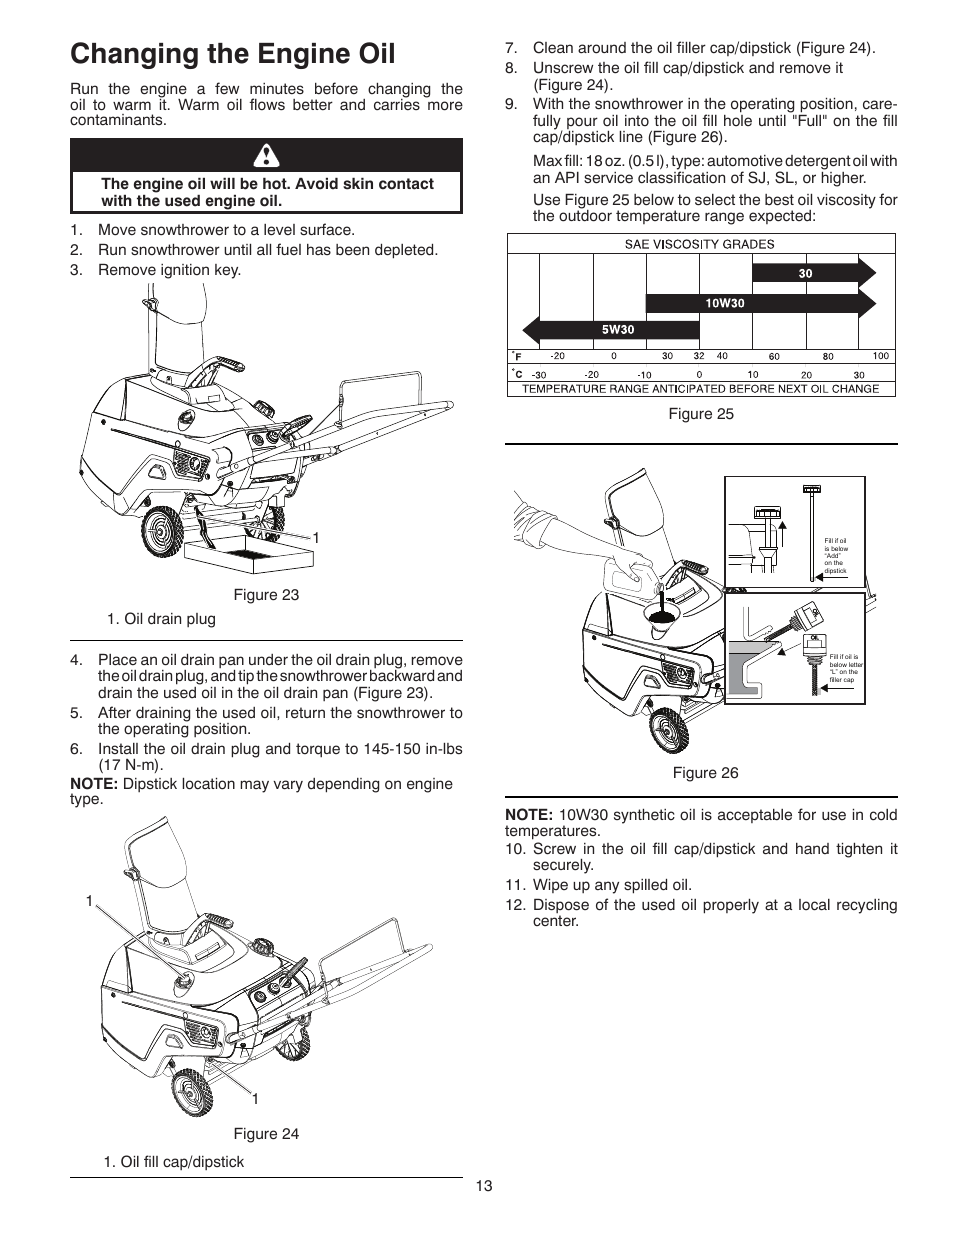 medium resolution of changing the engine oil poulan pro pr621 snow thrower user manual page 13 30